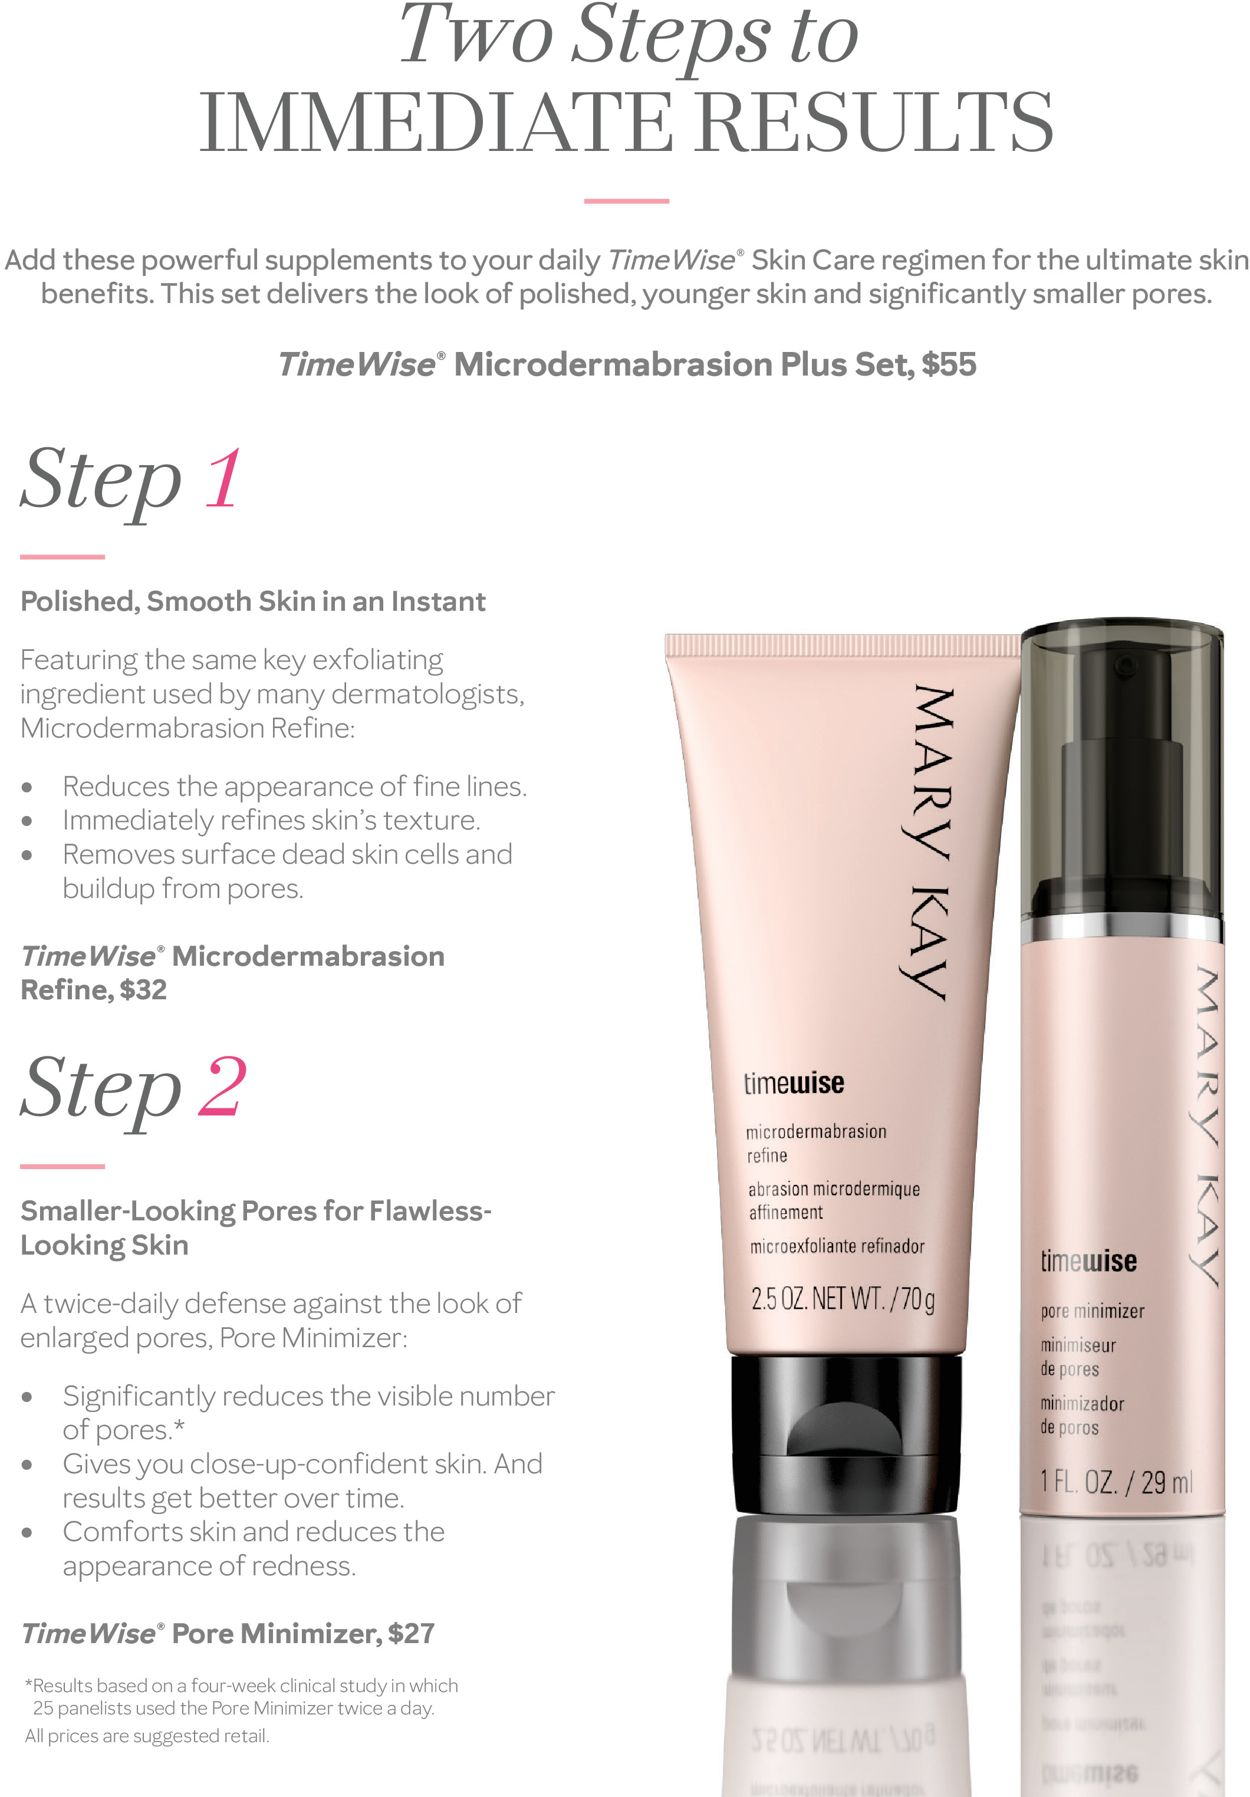 Mary Kay Current Weekly Ad 10 23 12 02 2019 16 Frequent Ads Com